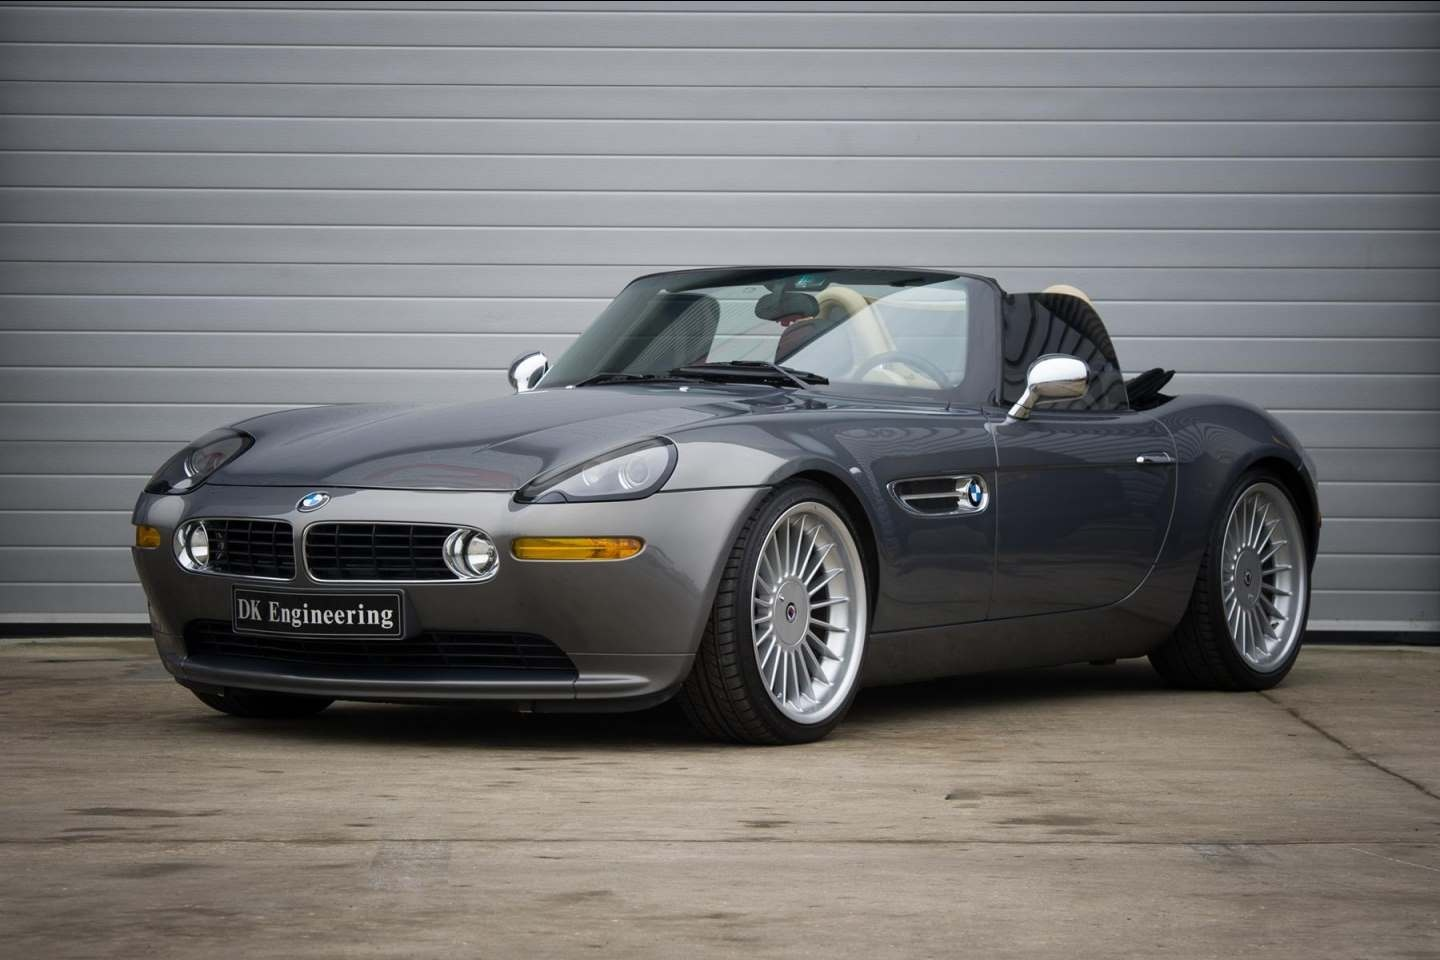 Bmw M5 0 60 >> BMW Z8 Roadster for sale - Vehicle Sales - DK Engineering